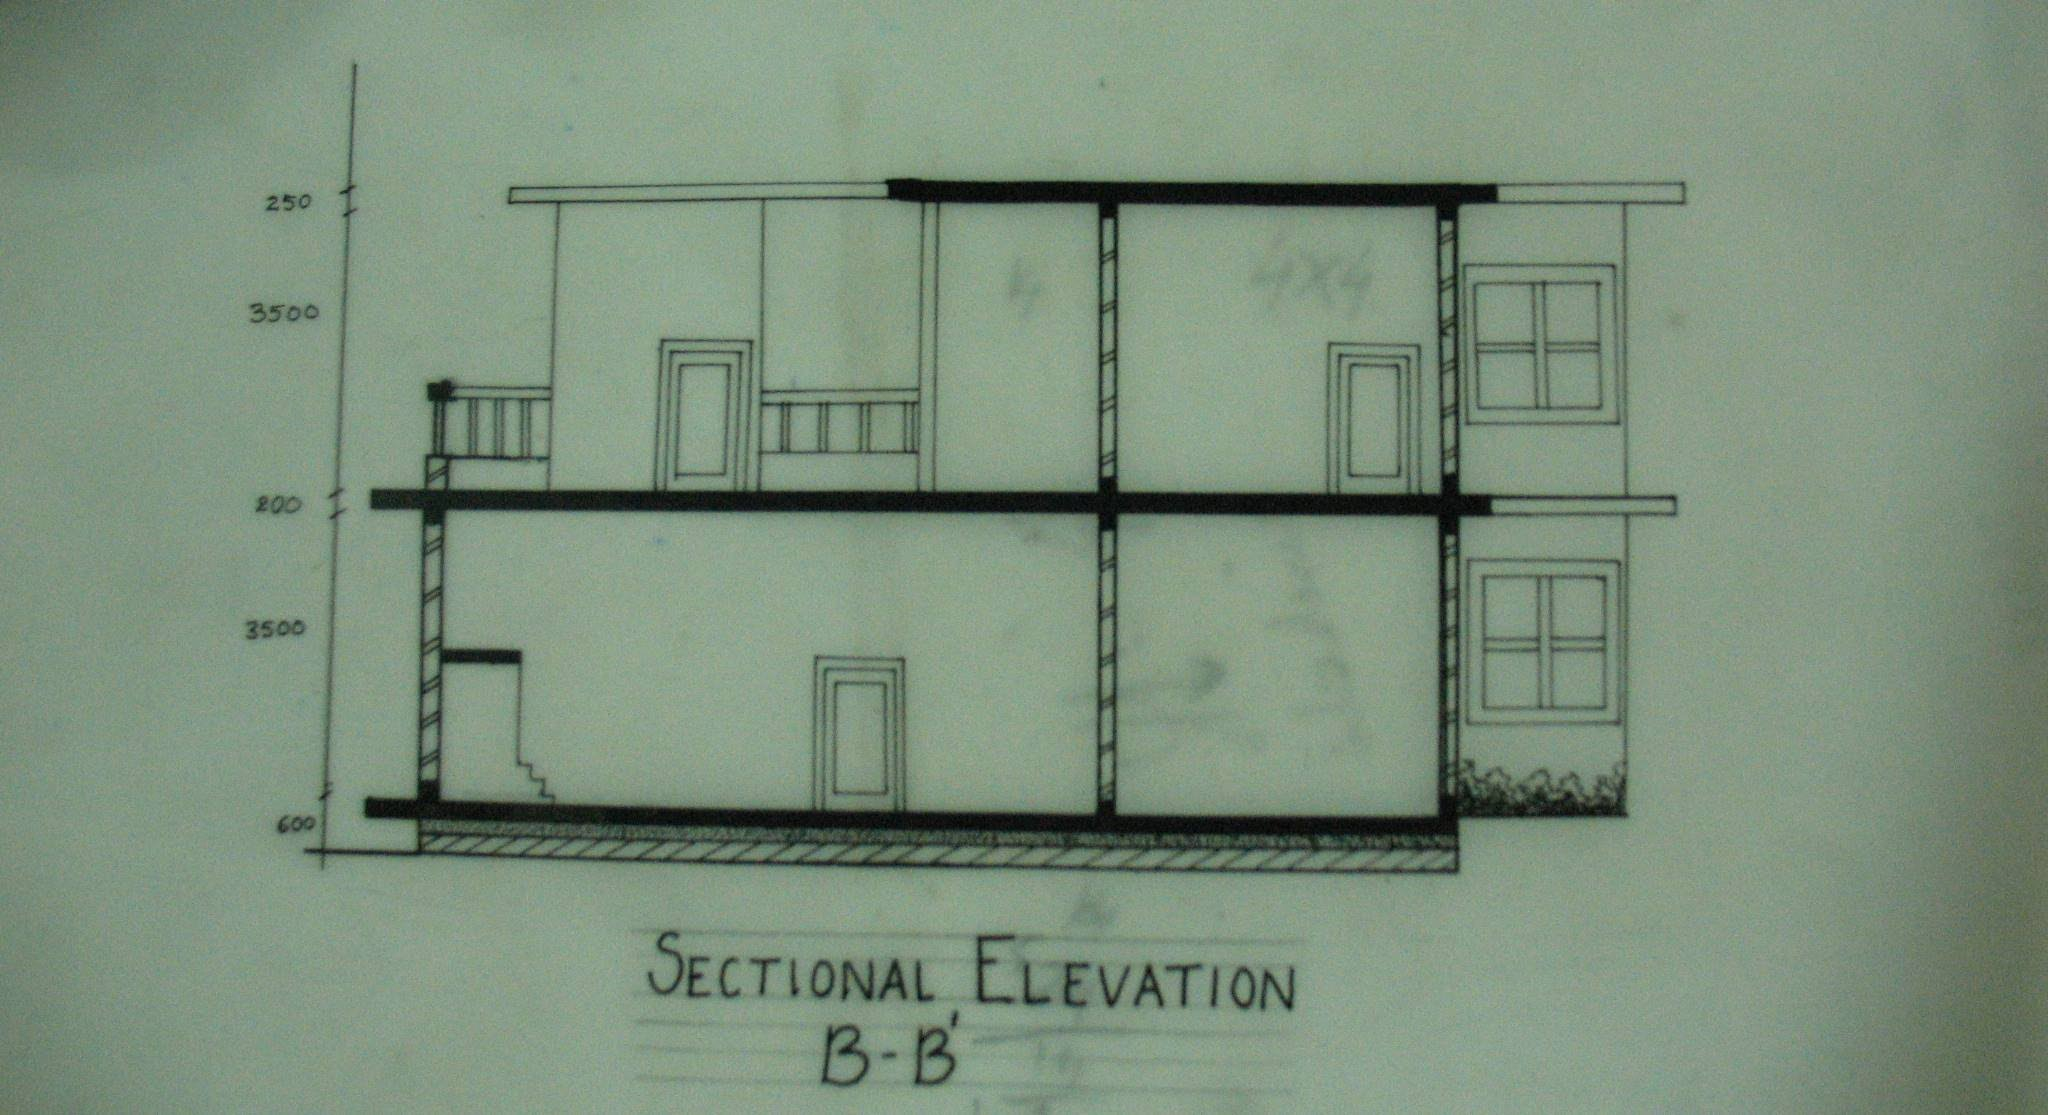 Sectional elevation 1